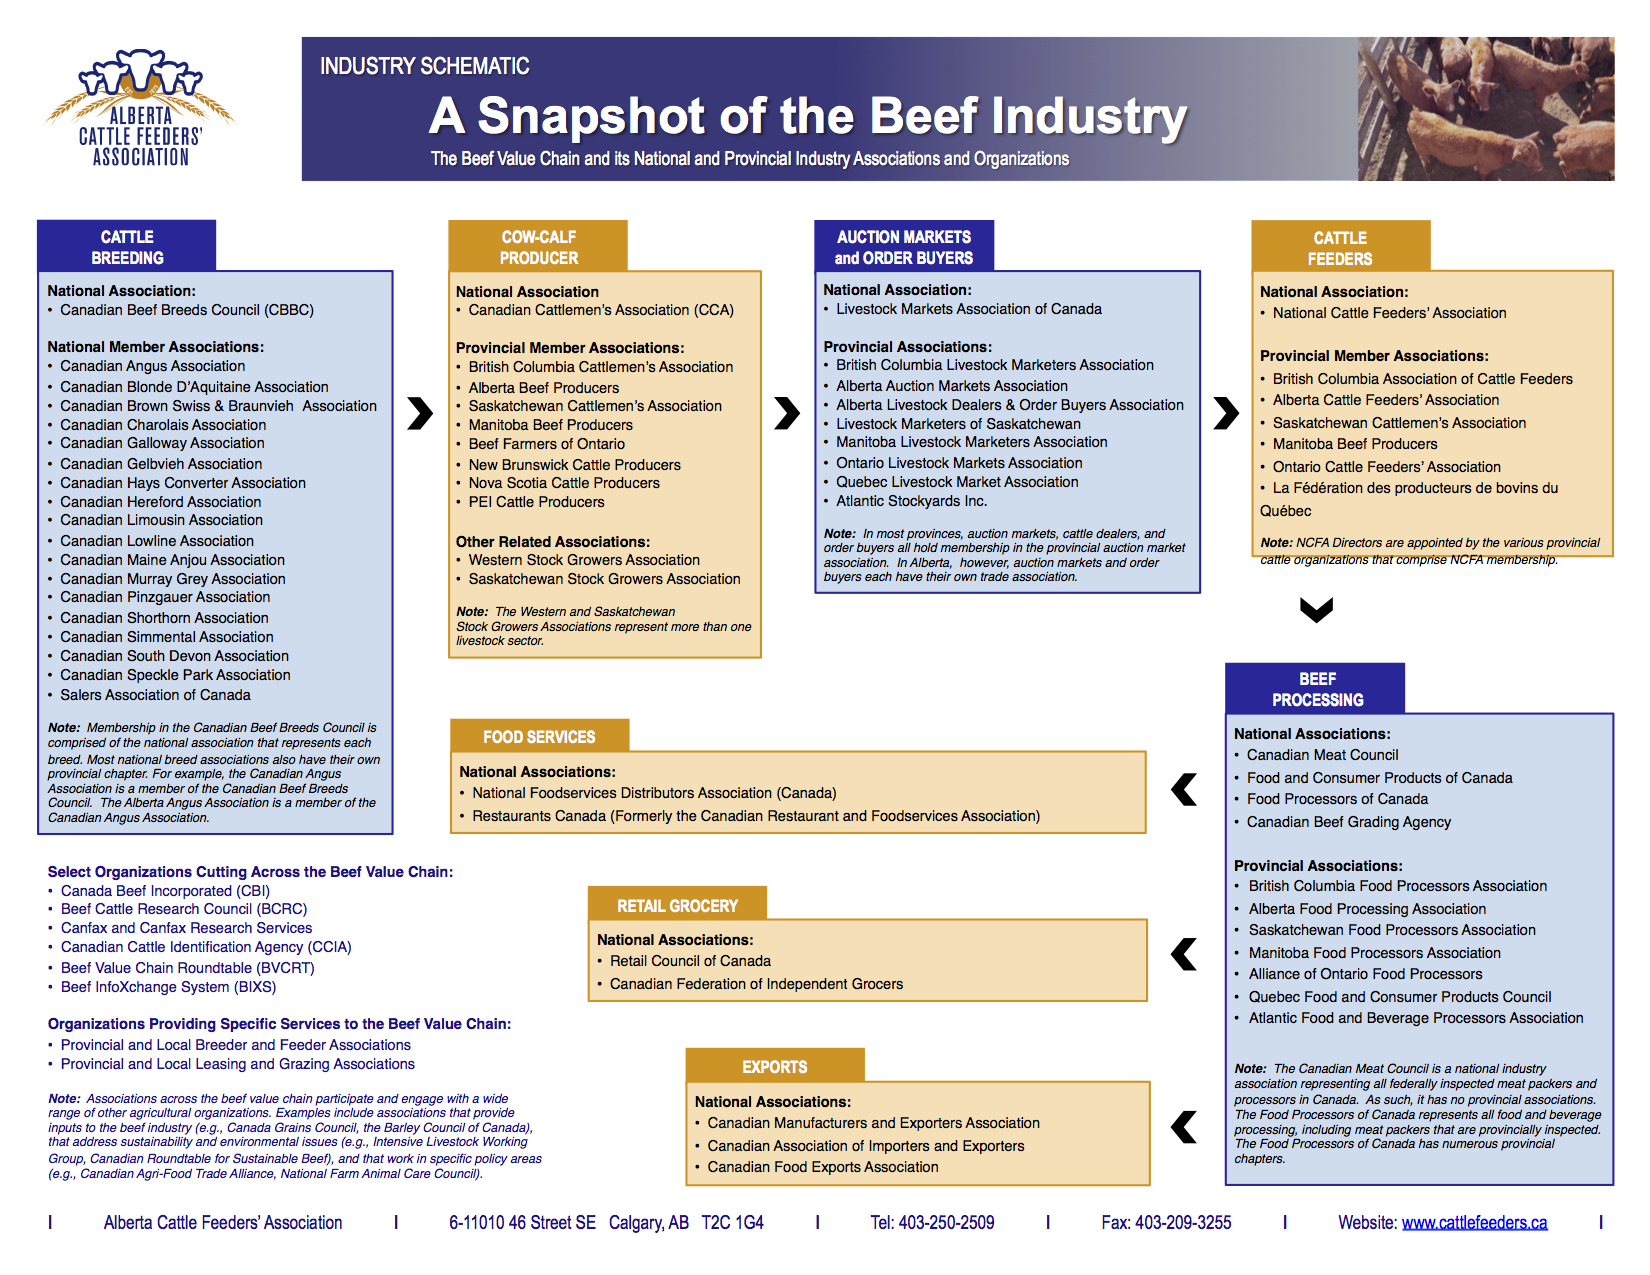 ACFA Beef Value Chain 15.07.04 copy